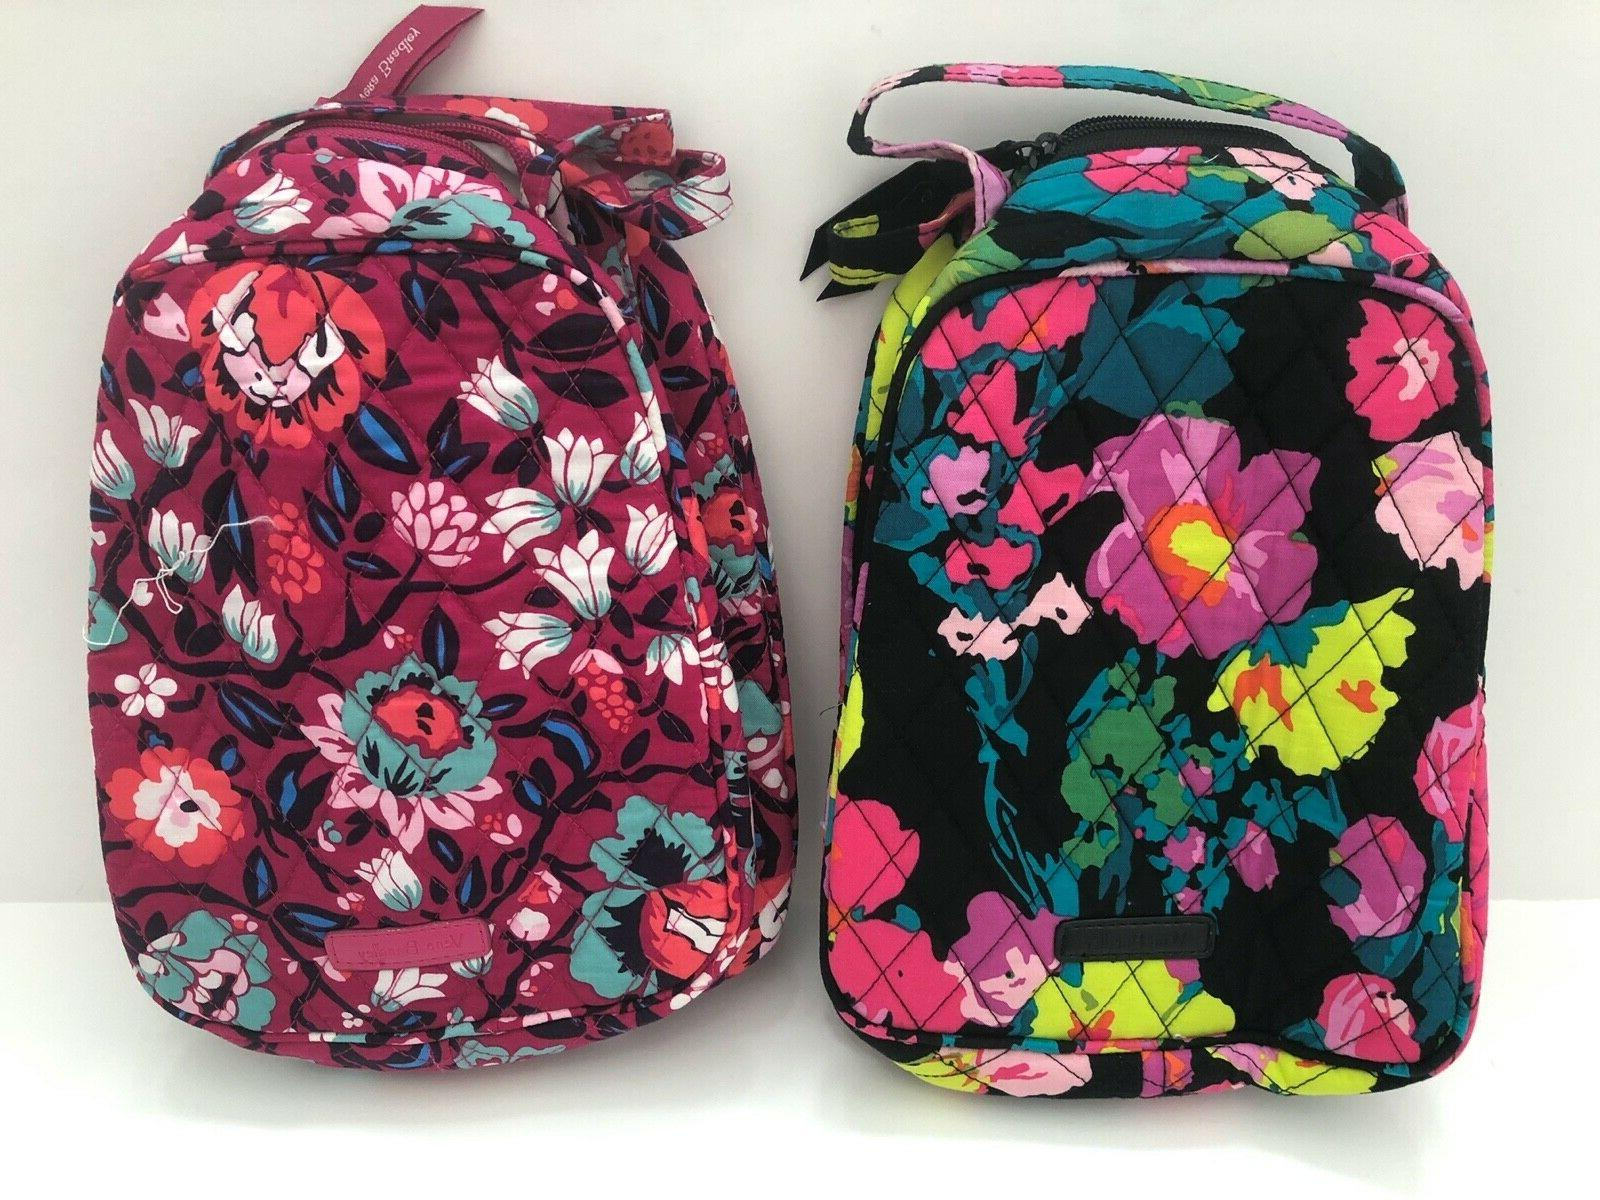 Vera Insulated Bag Tote Sack - MSRP